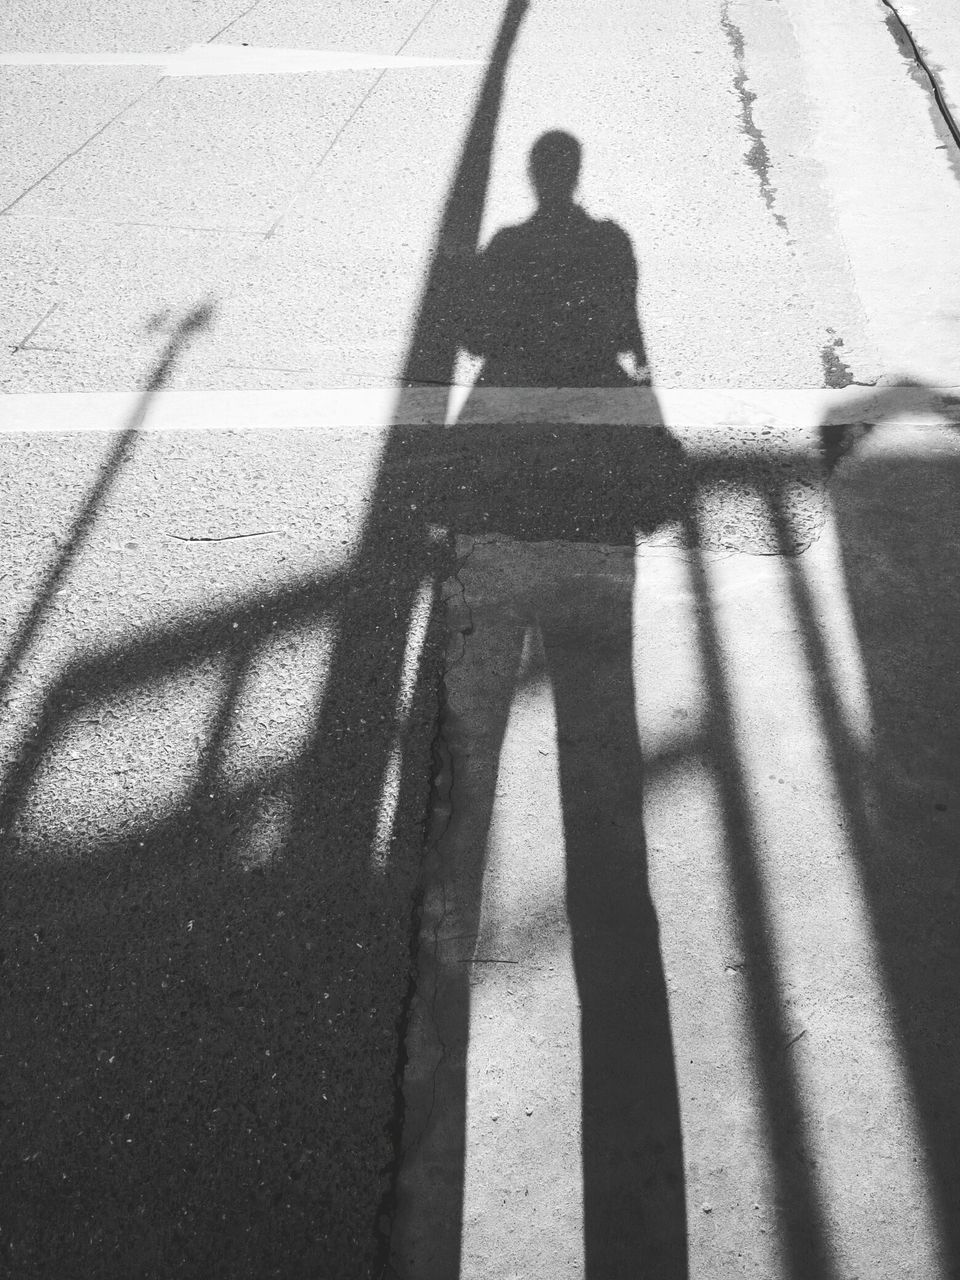 shadow, focus on shadow, sunlight, real people, long shadow - shadow, leisure activity, one person, outdoors, lifestyles, day, high angle view, silhouette, standing, men, full length, people